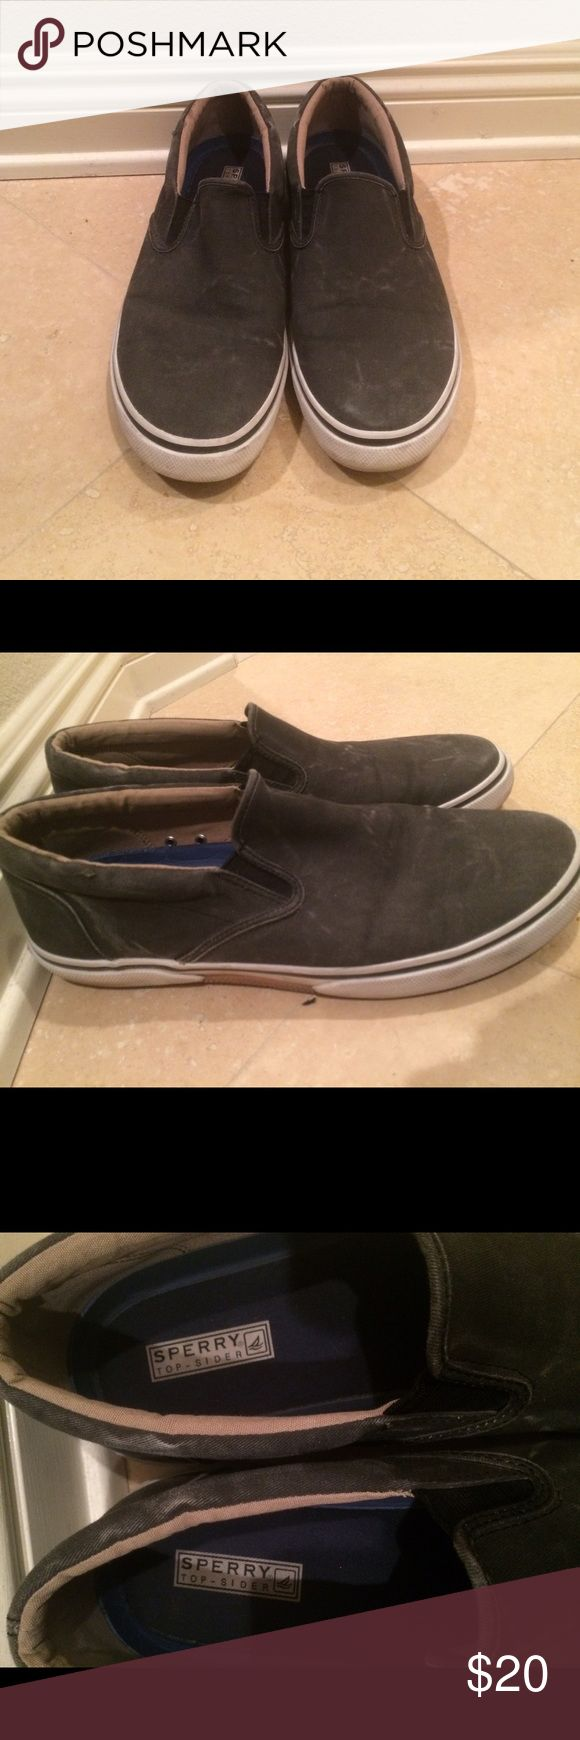 Men's Sperry's shoes! Men's sperrys shoes barely worn! Distressed look Sperry Shoes Sneakers